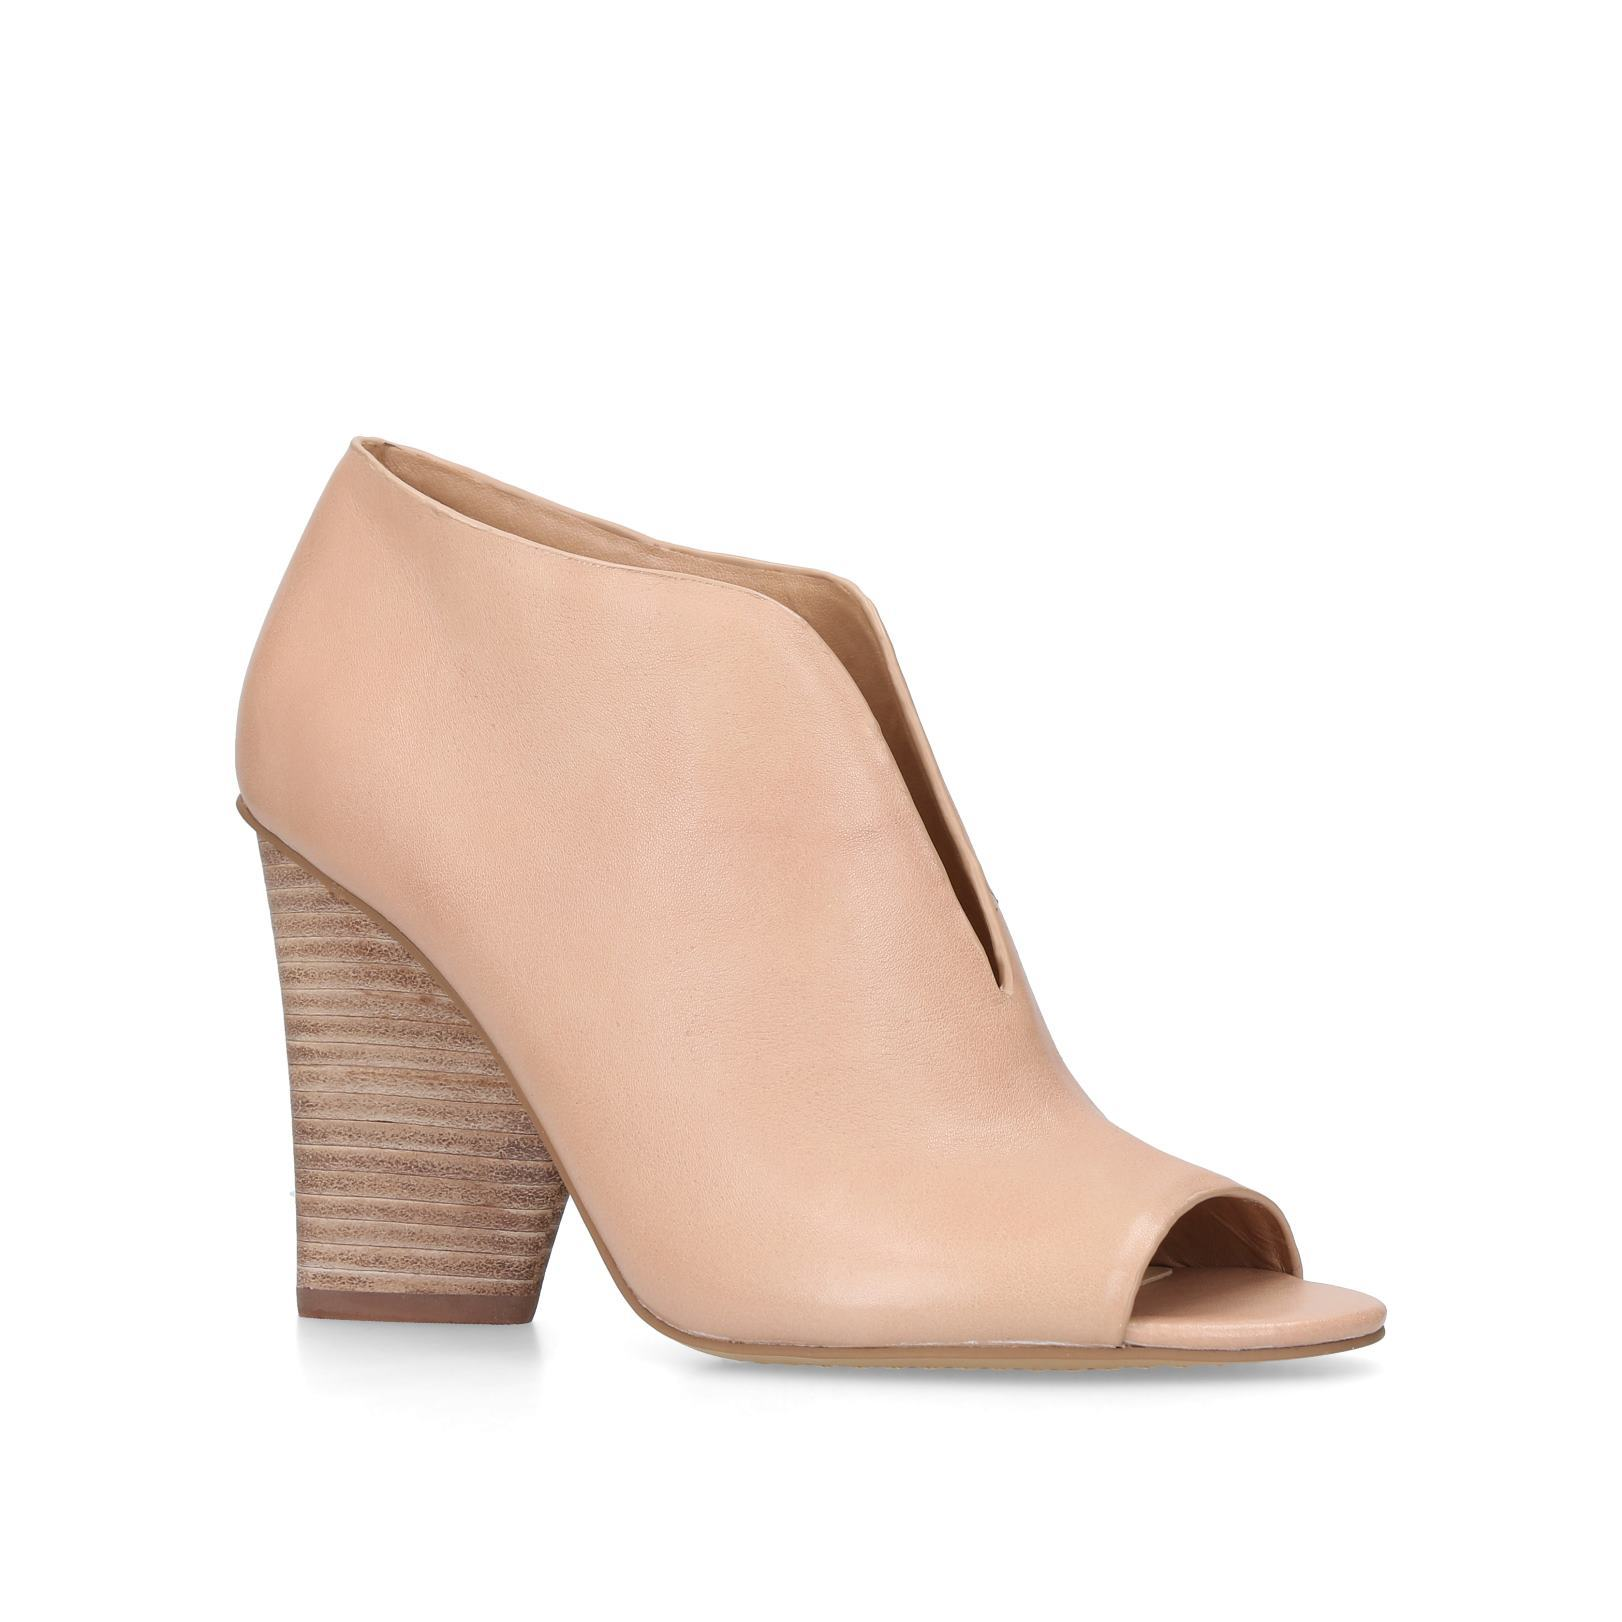 aa27408429 Vince Camuto   ANDRITA Nude Open Toe Shoe Boots by VINCE CAMUTO